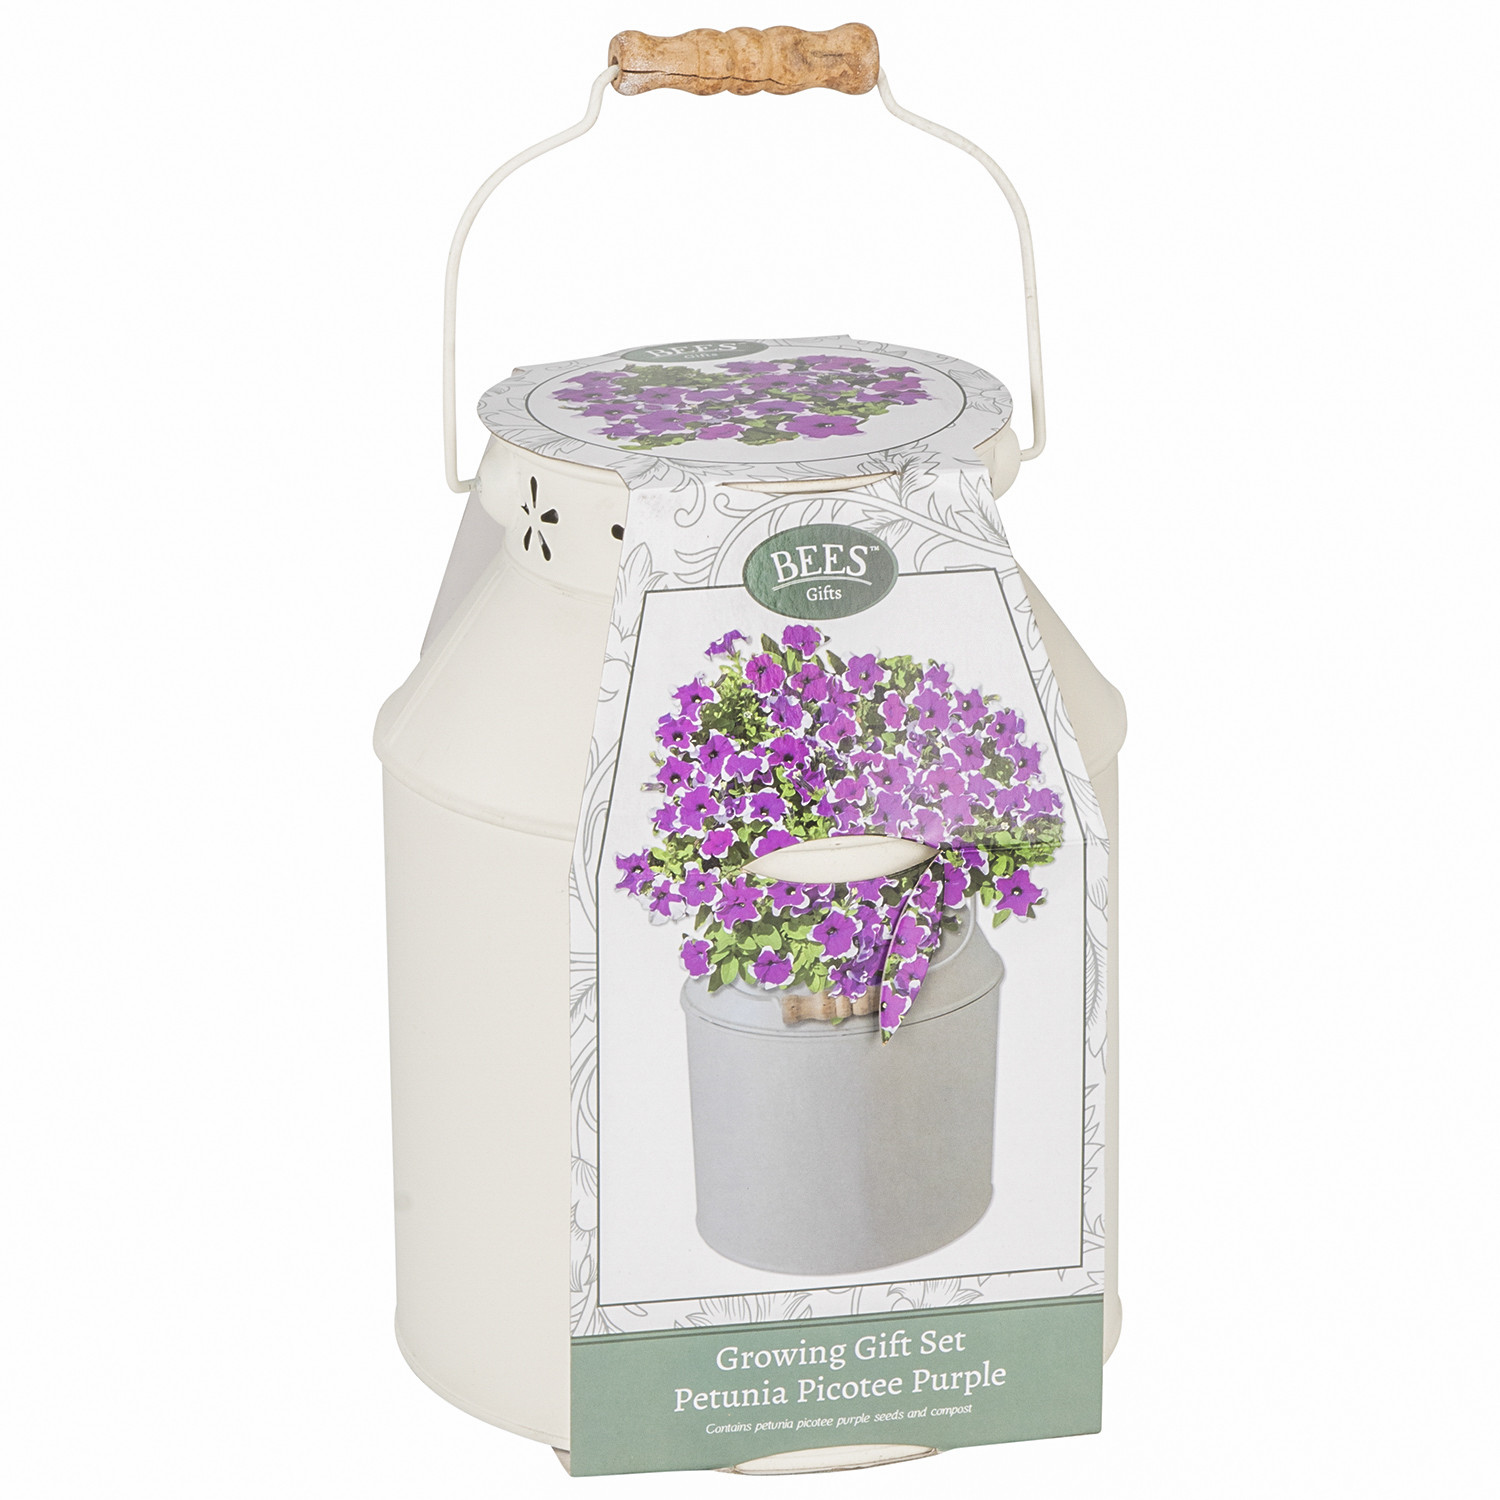 Decorative Milk Urn Bees Milk Churn Gift Petunias